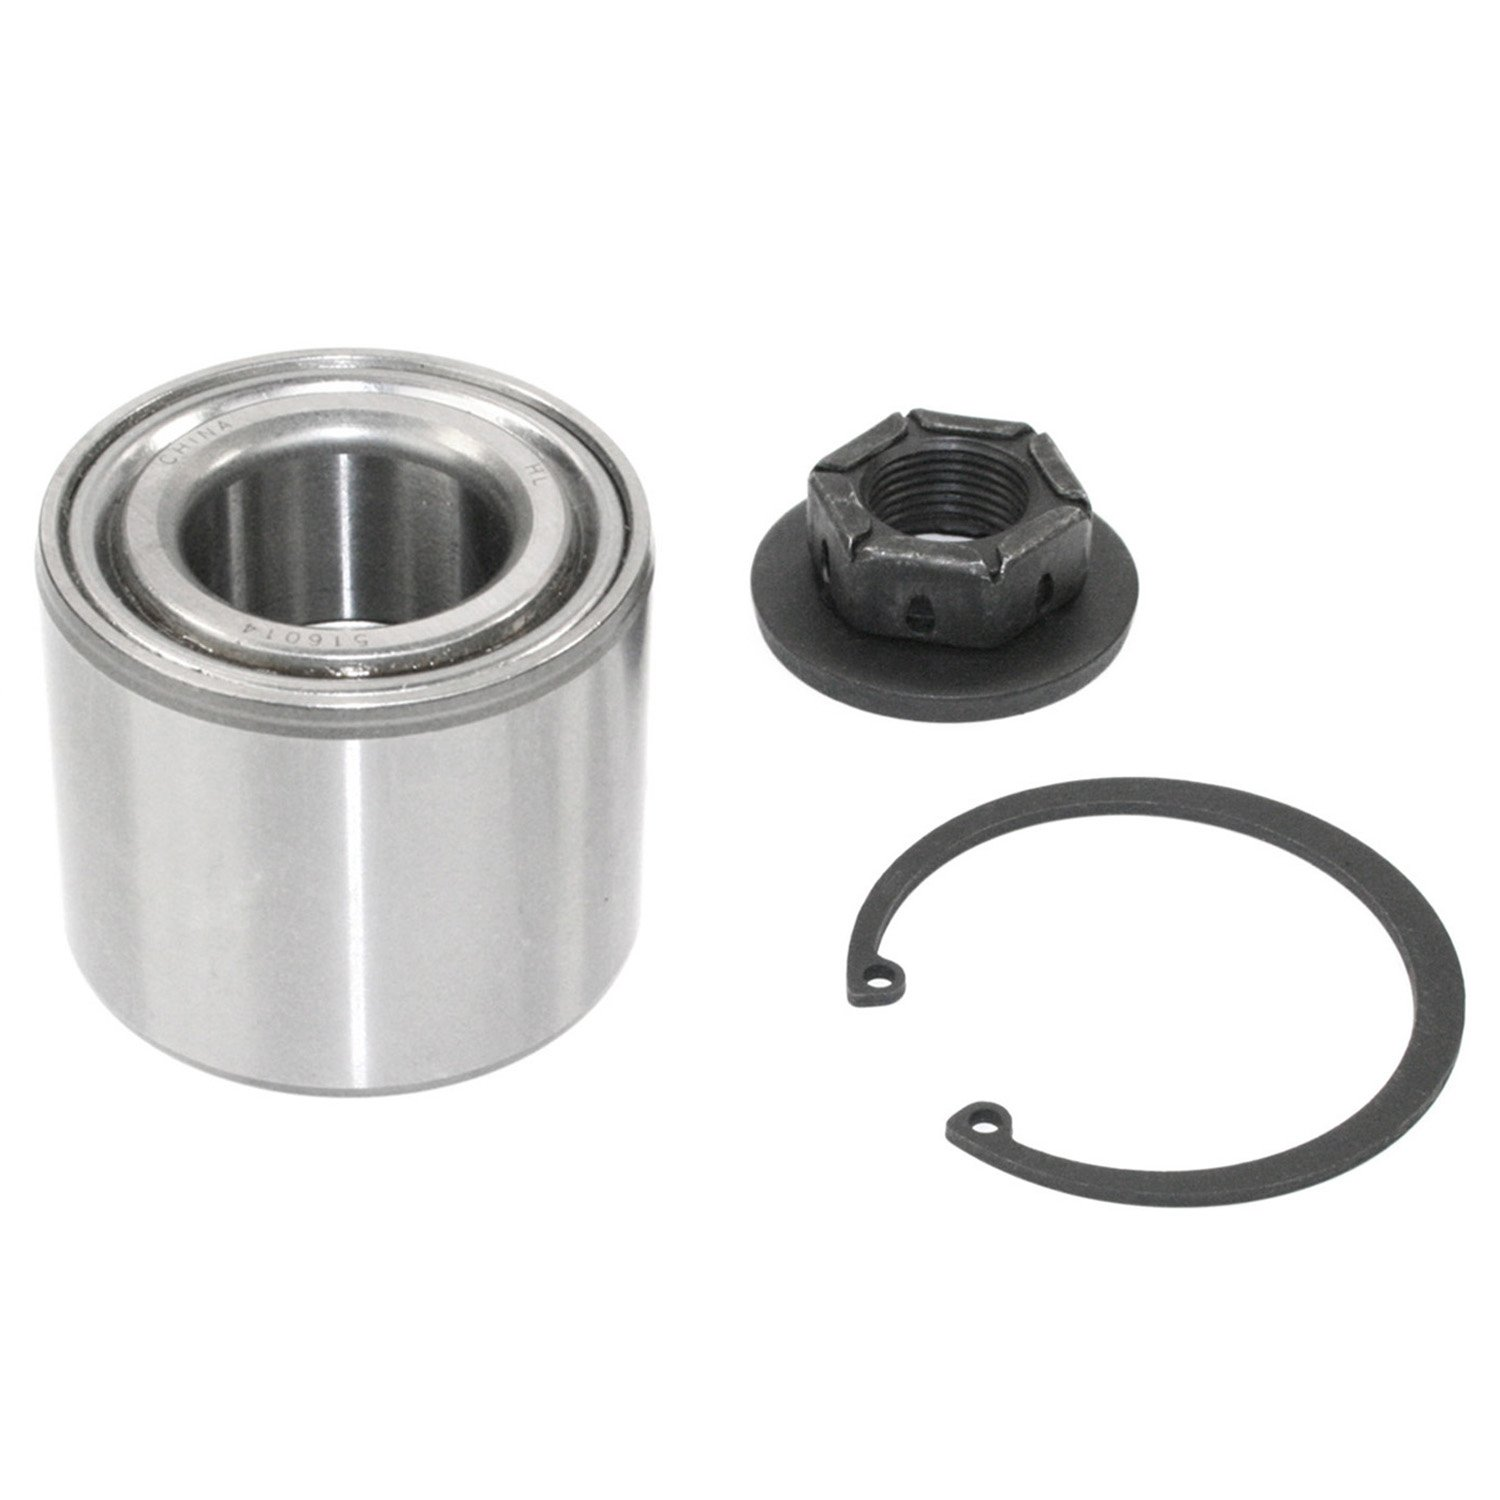 DuraGo 29519997 Rear Wheel Bearing Kit